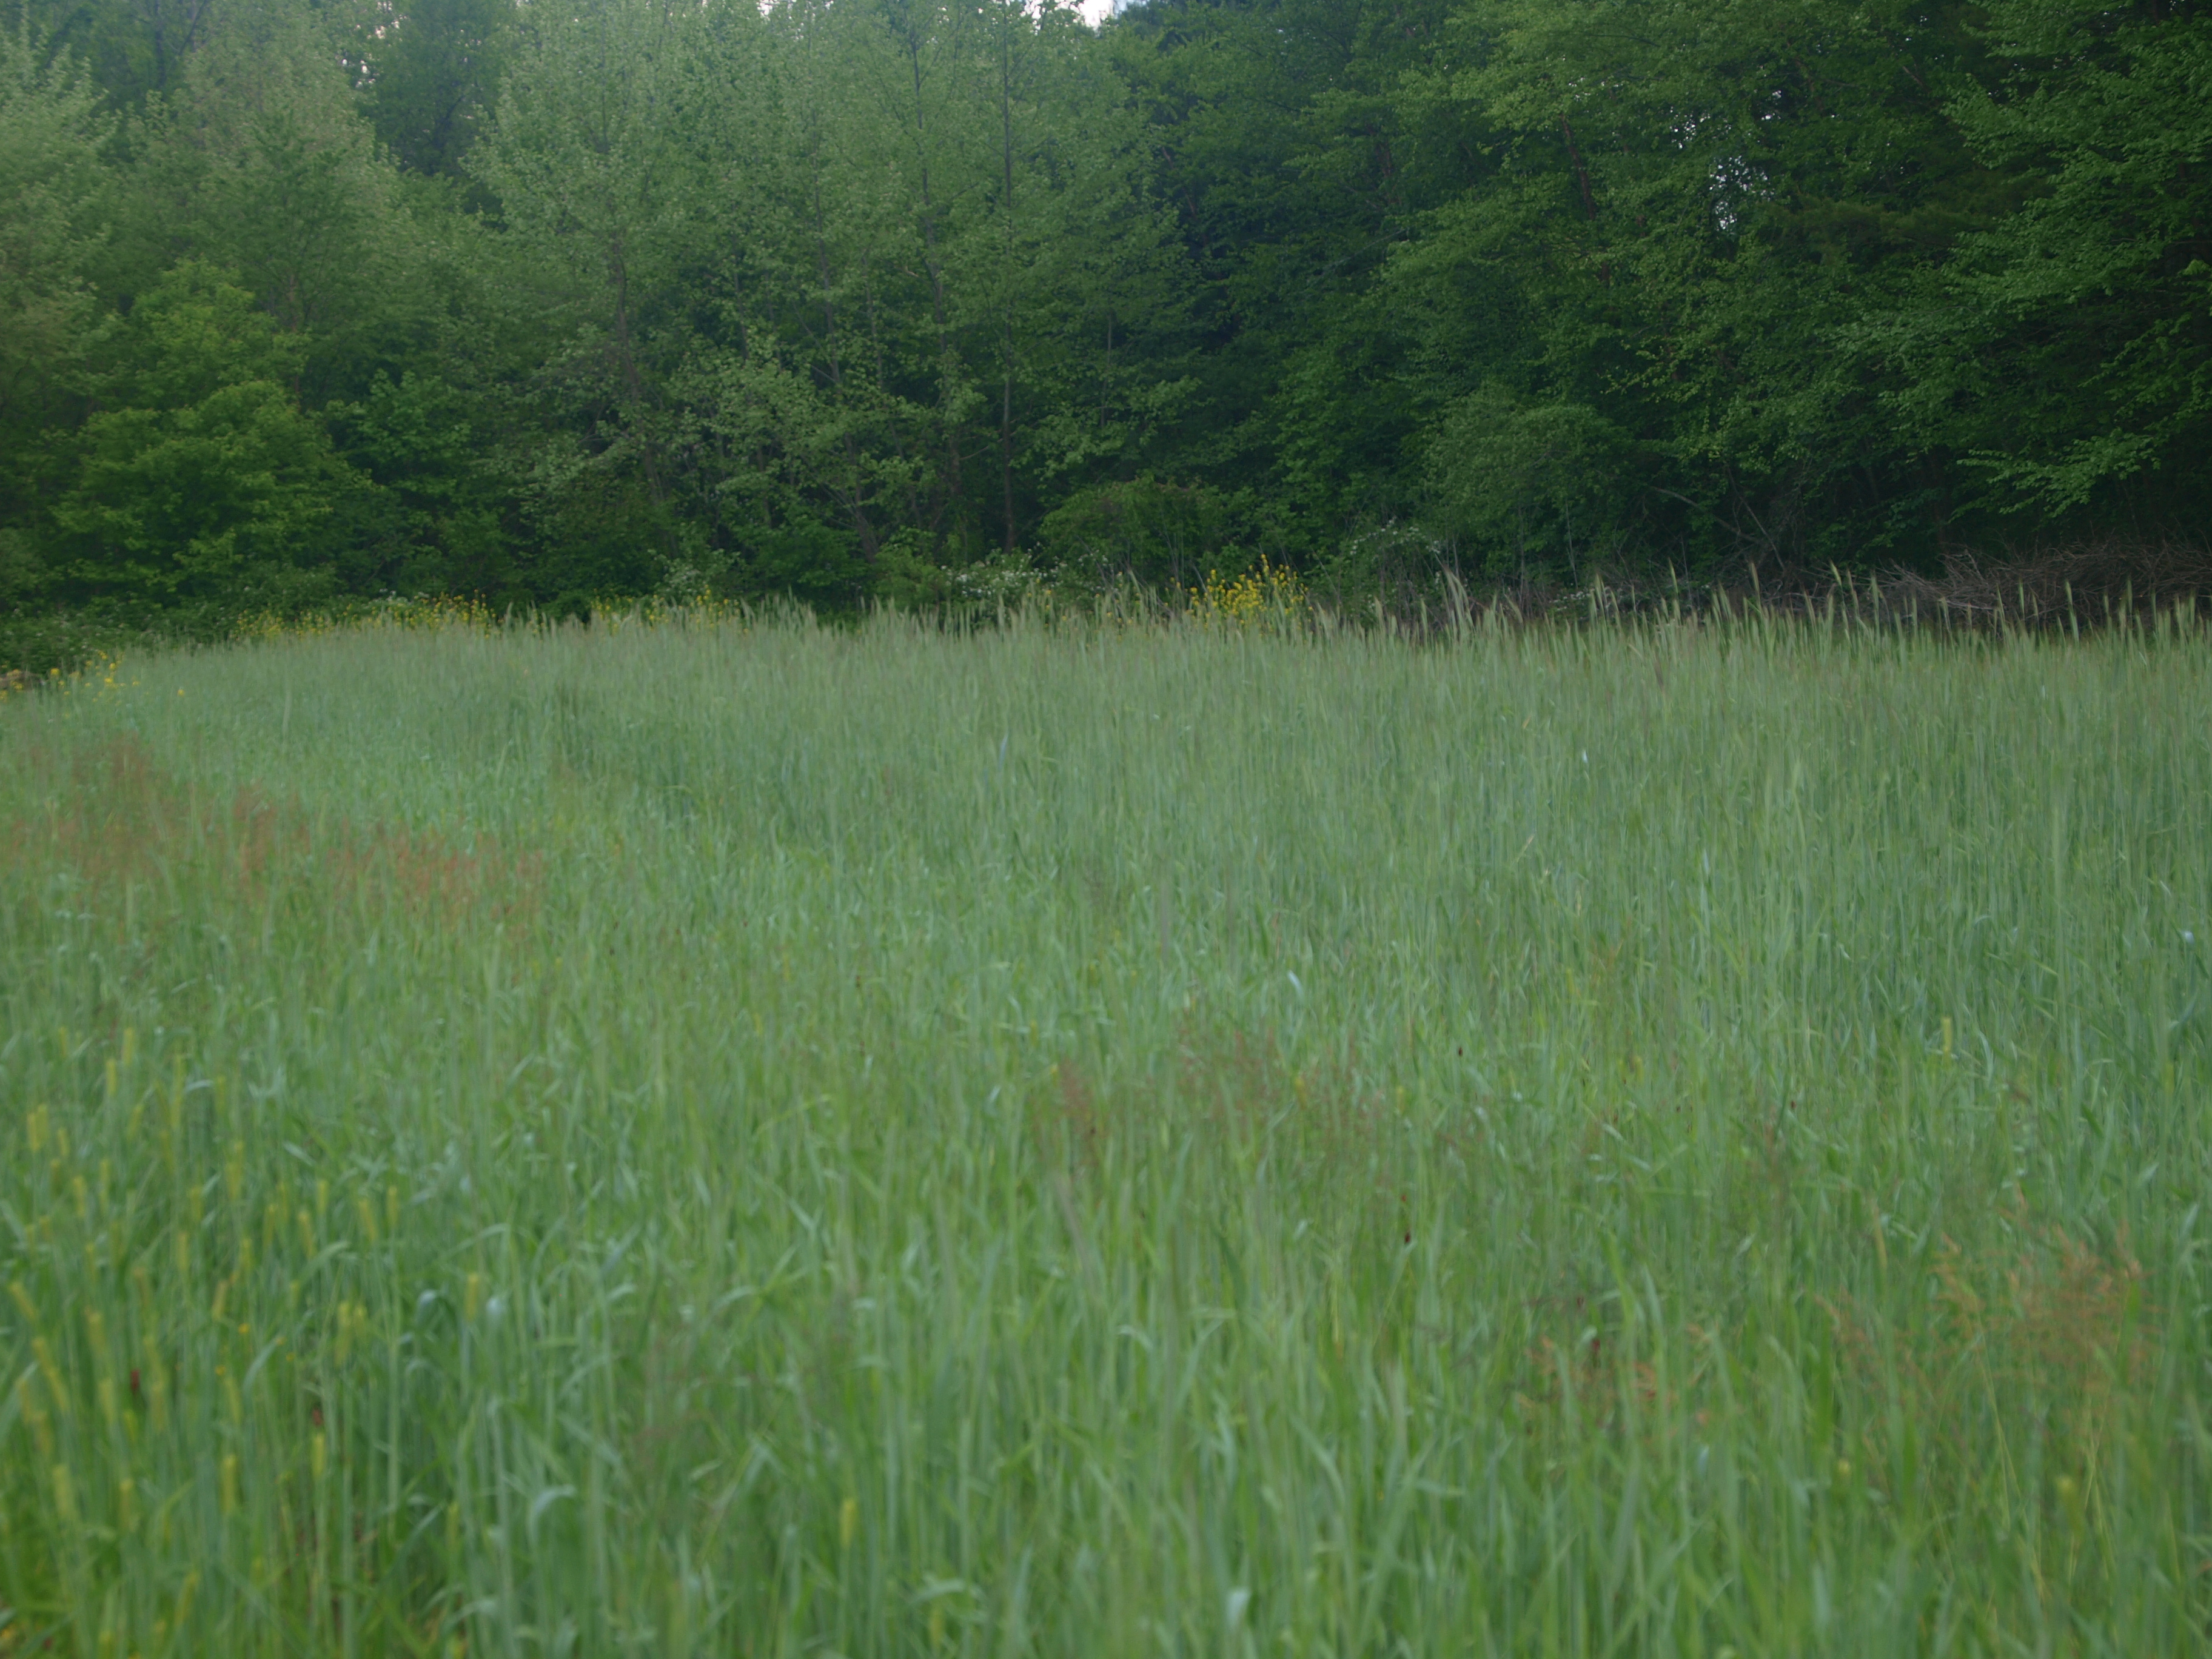 Rye cover crops